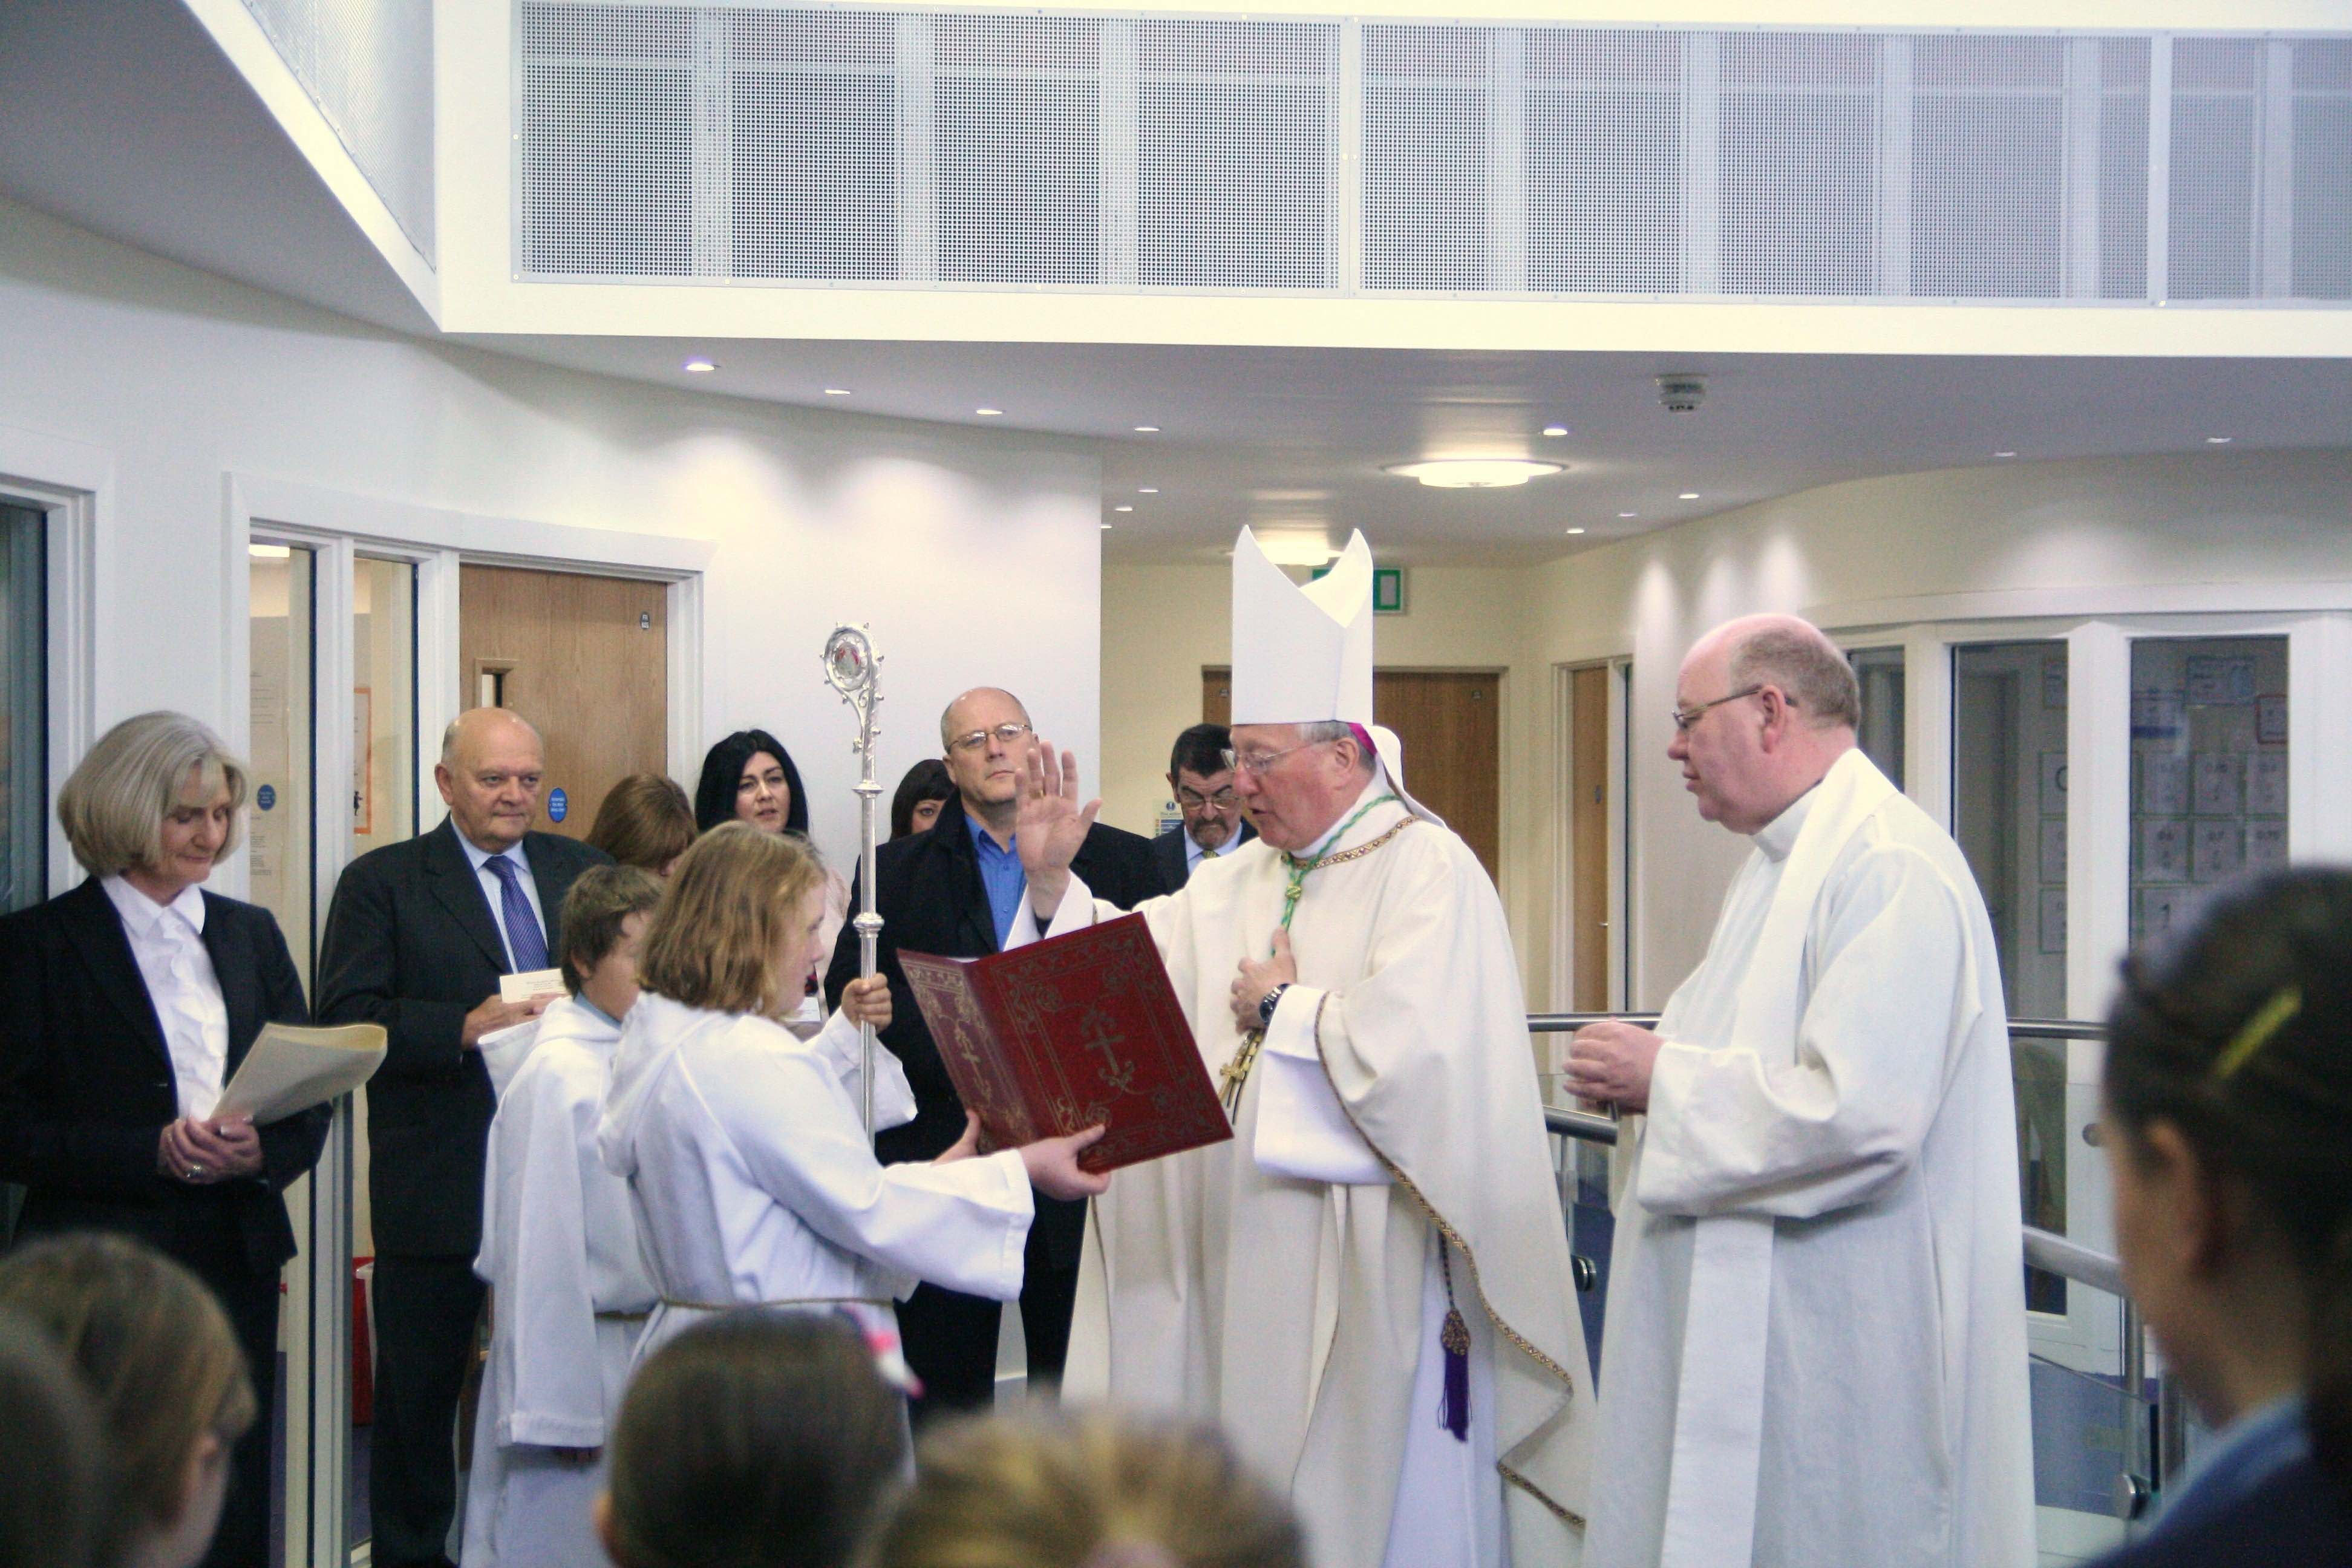 Blessing of new school building